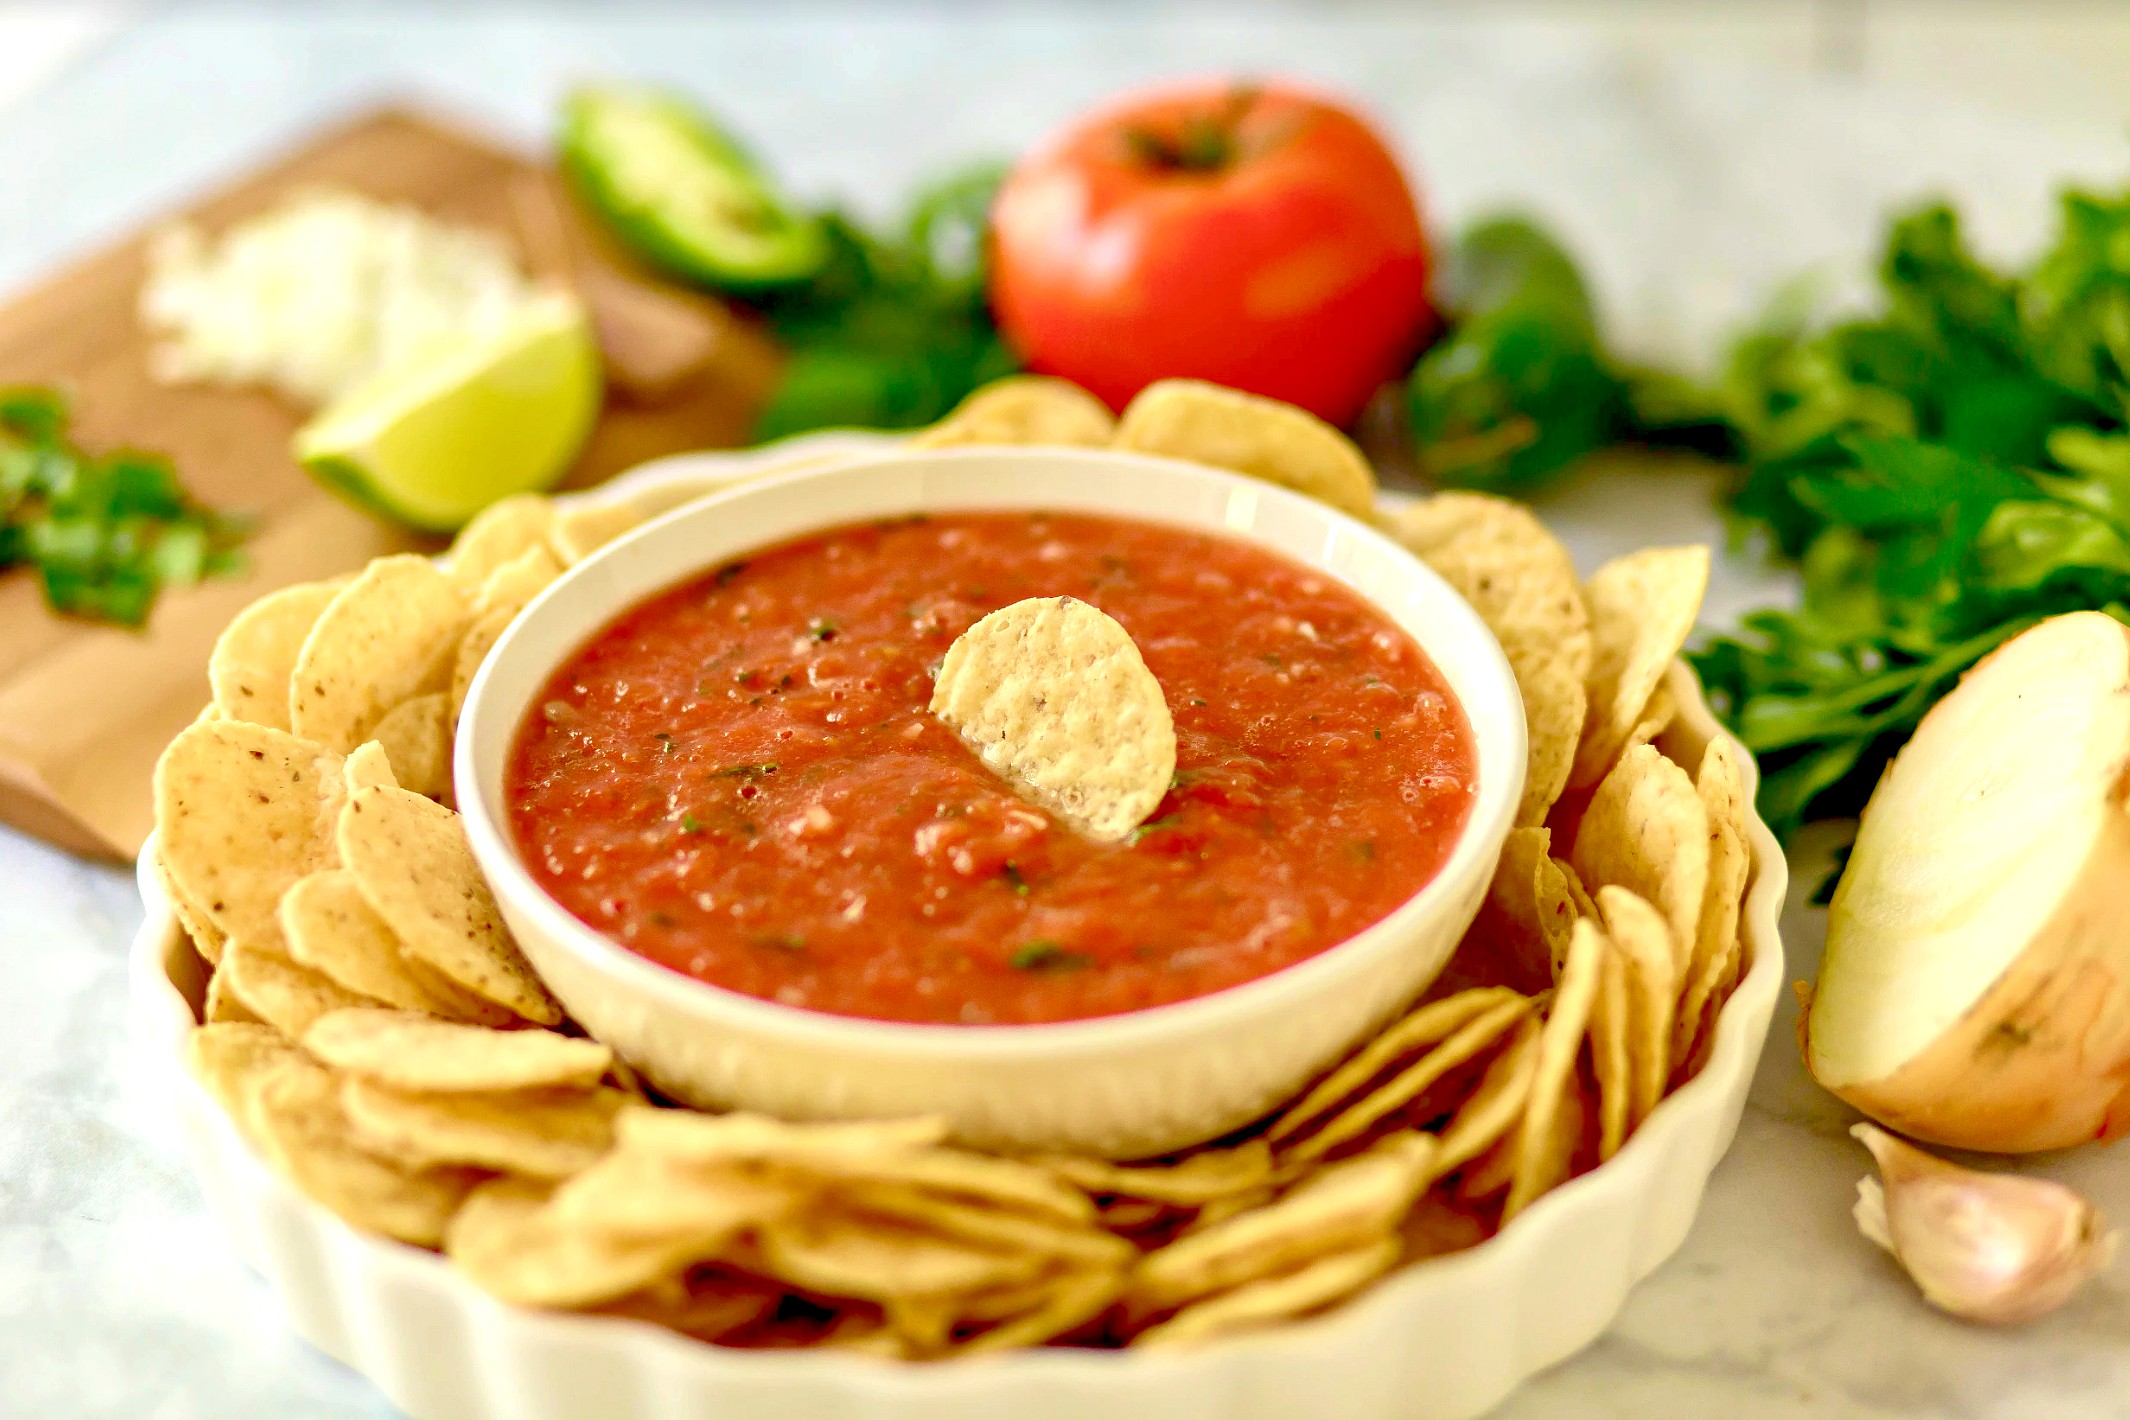 5 Minute Homemade Salsa and Tips on Throwing a Football Party